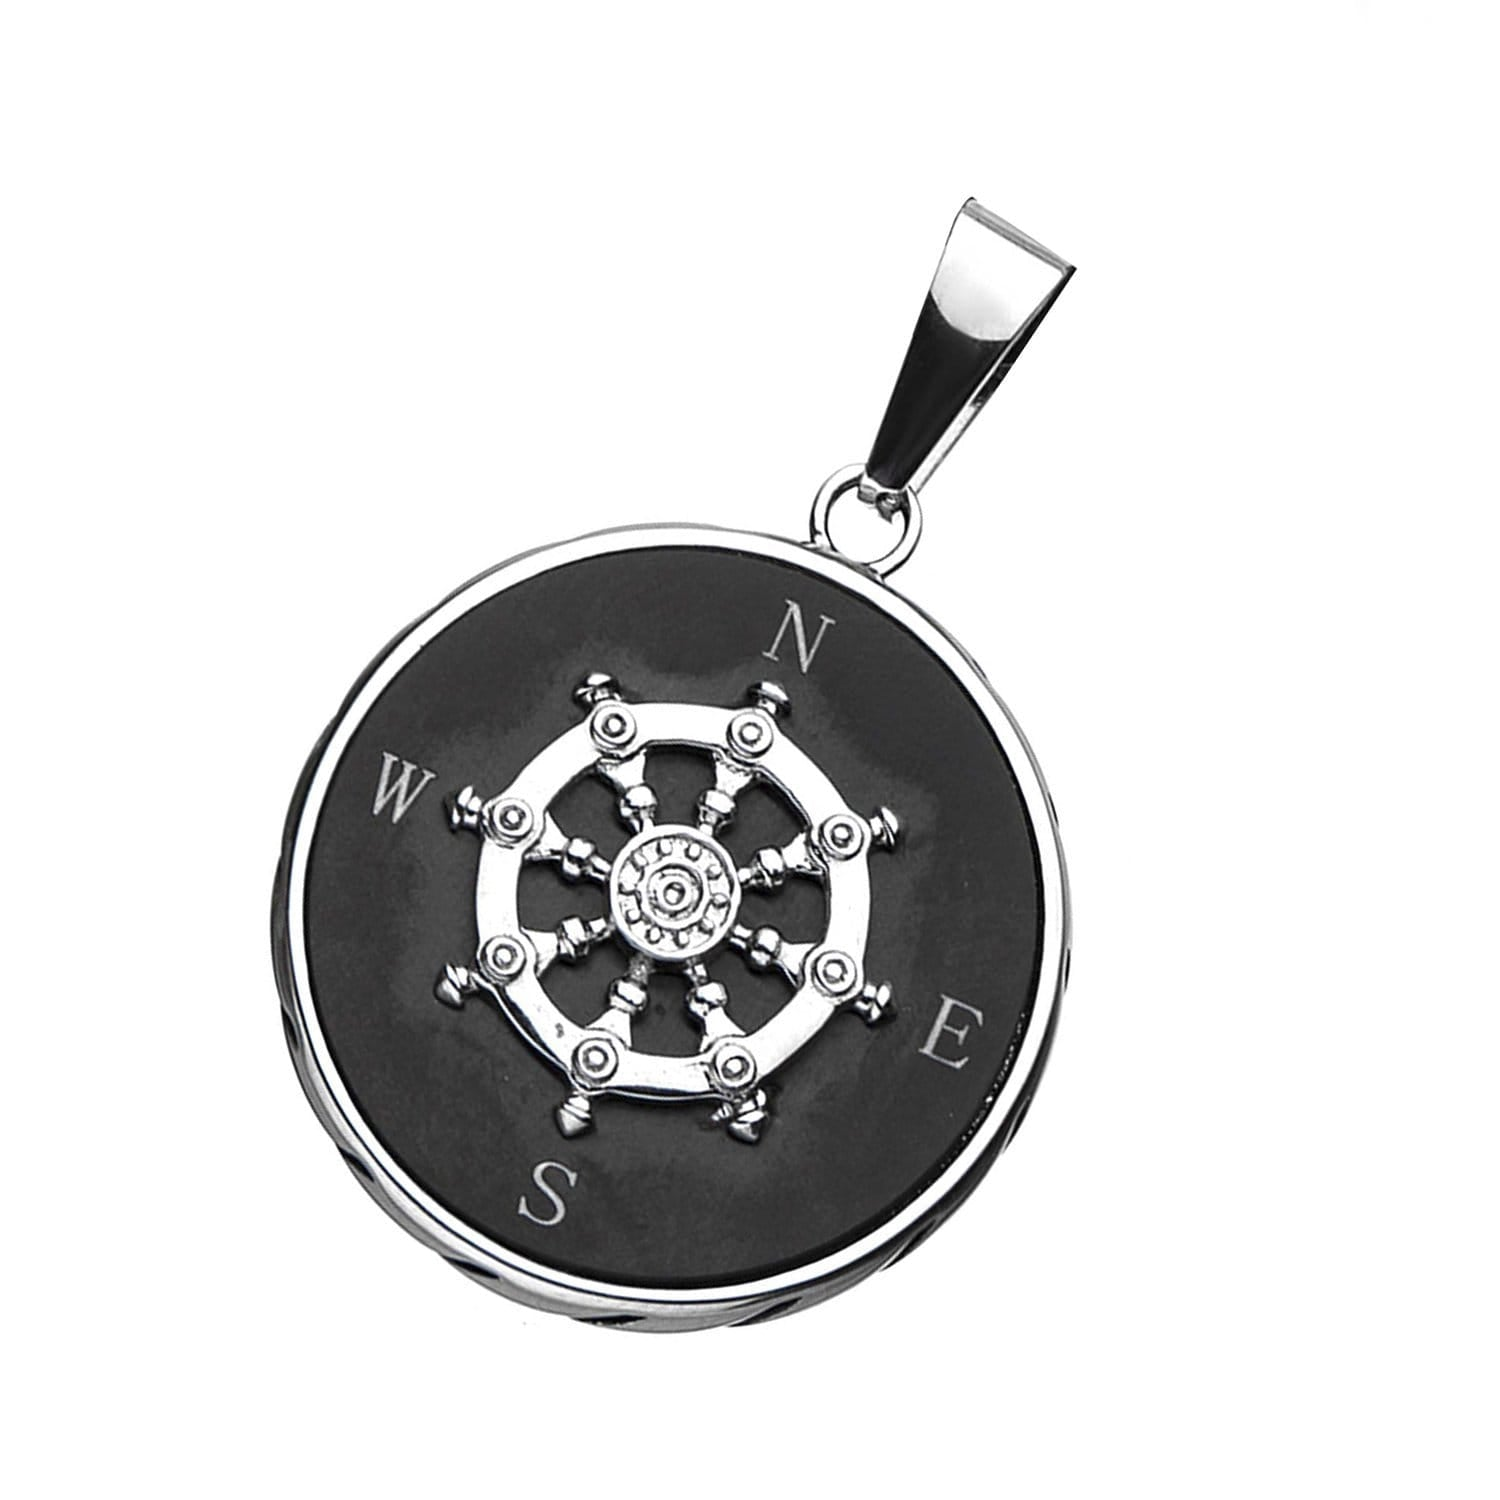 Black & Silver Stainless Steel Ship's Helm with Compass Pendant